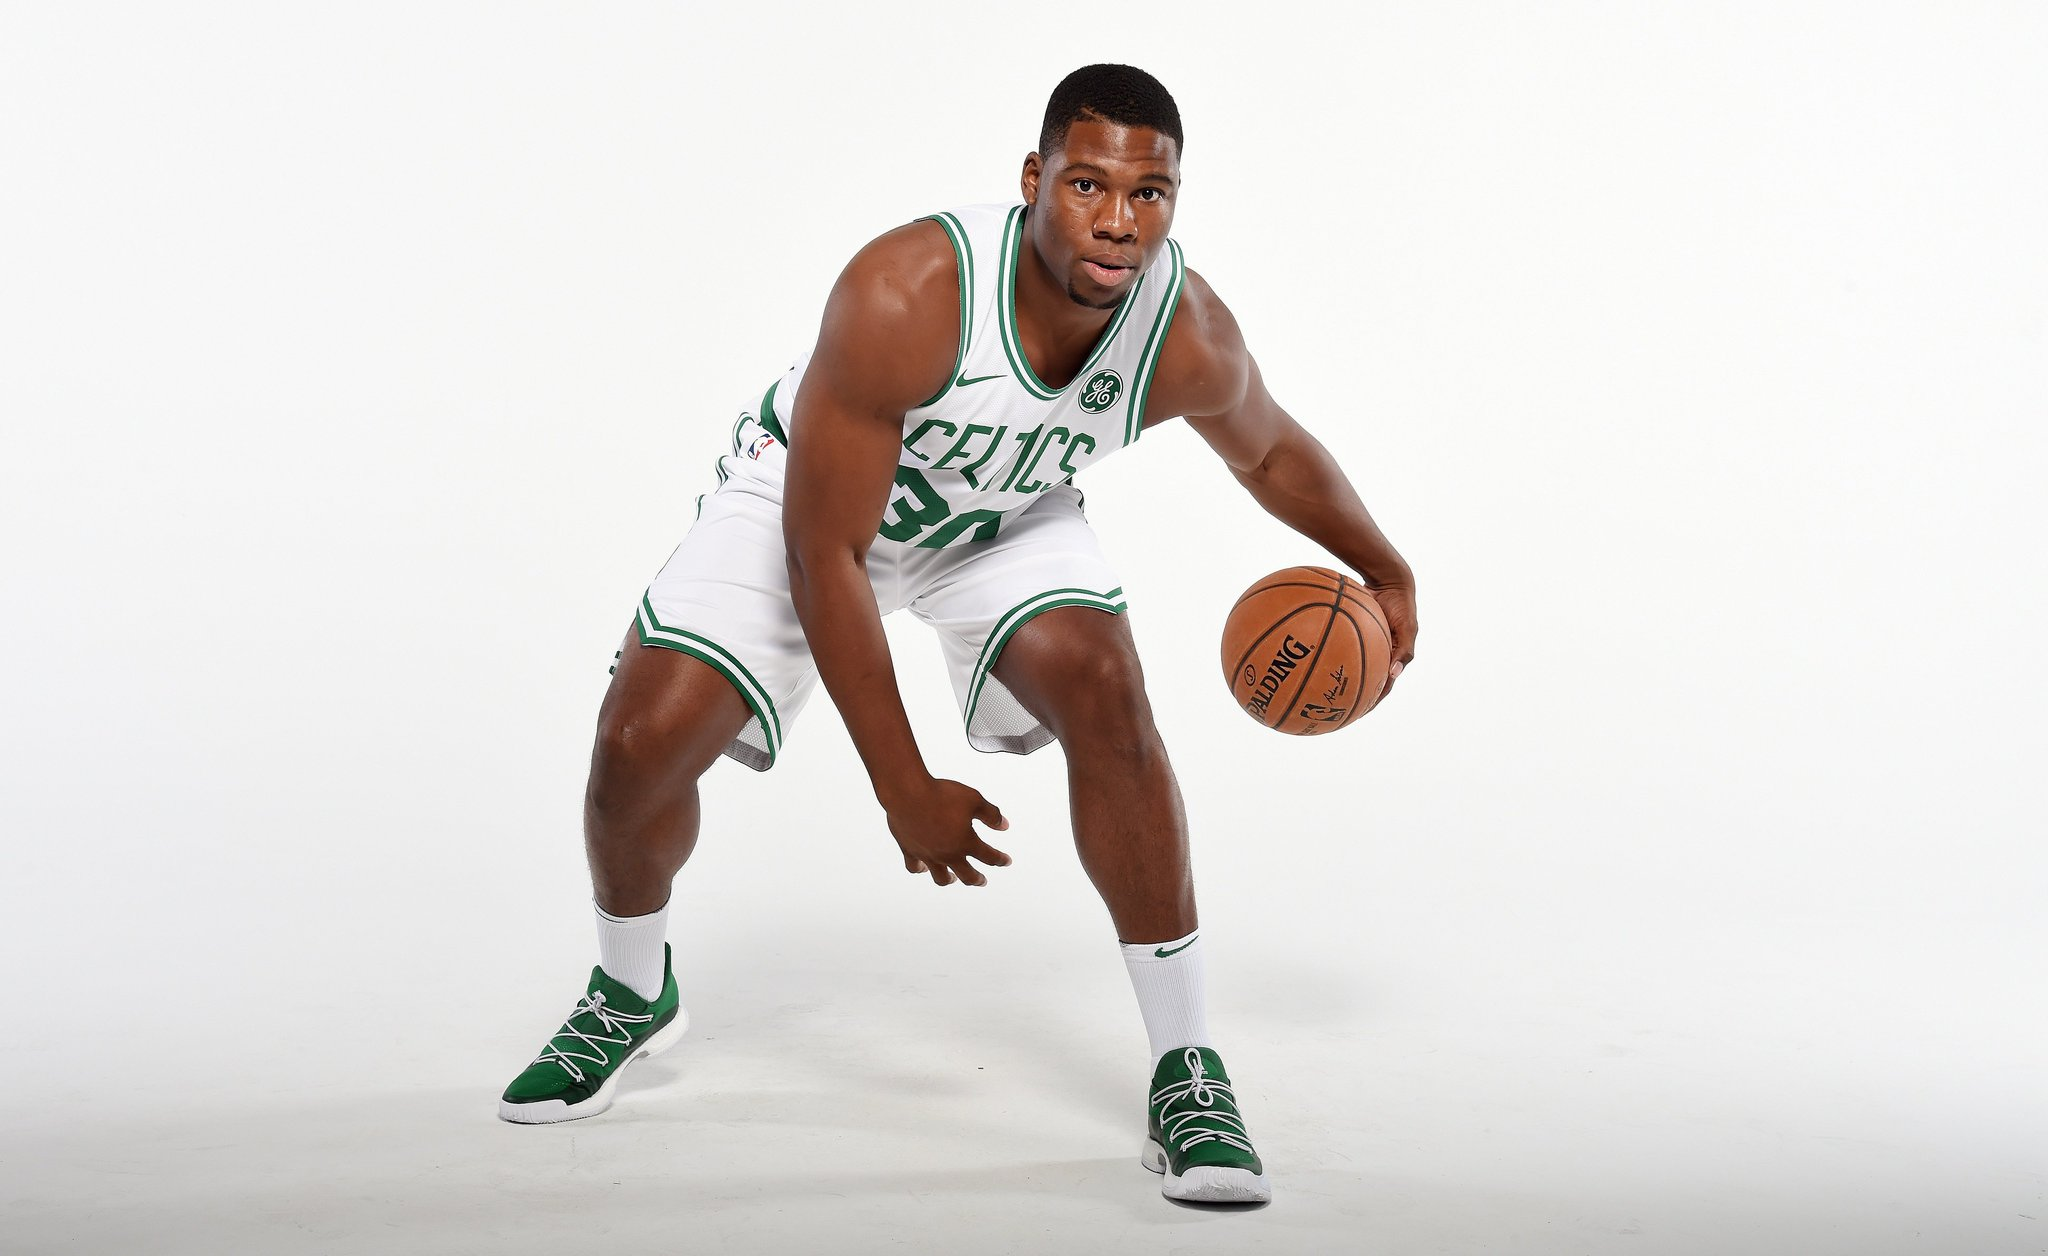 Join us in wishing Guerschon Yabusele of the @celtics a HAPPY 22nd BIRTHDAY! #NBABDAY #Celtics https://t.co/ohLq0c8njC